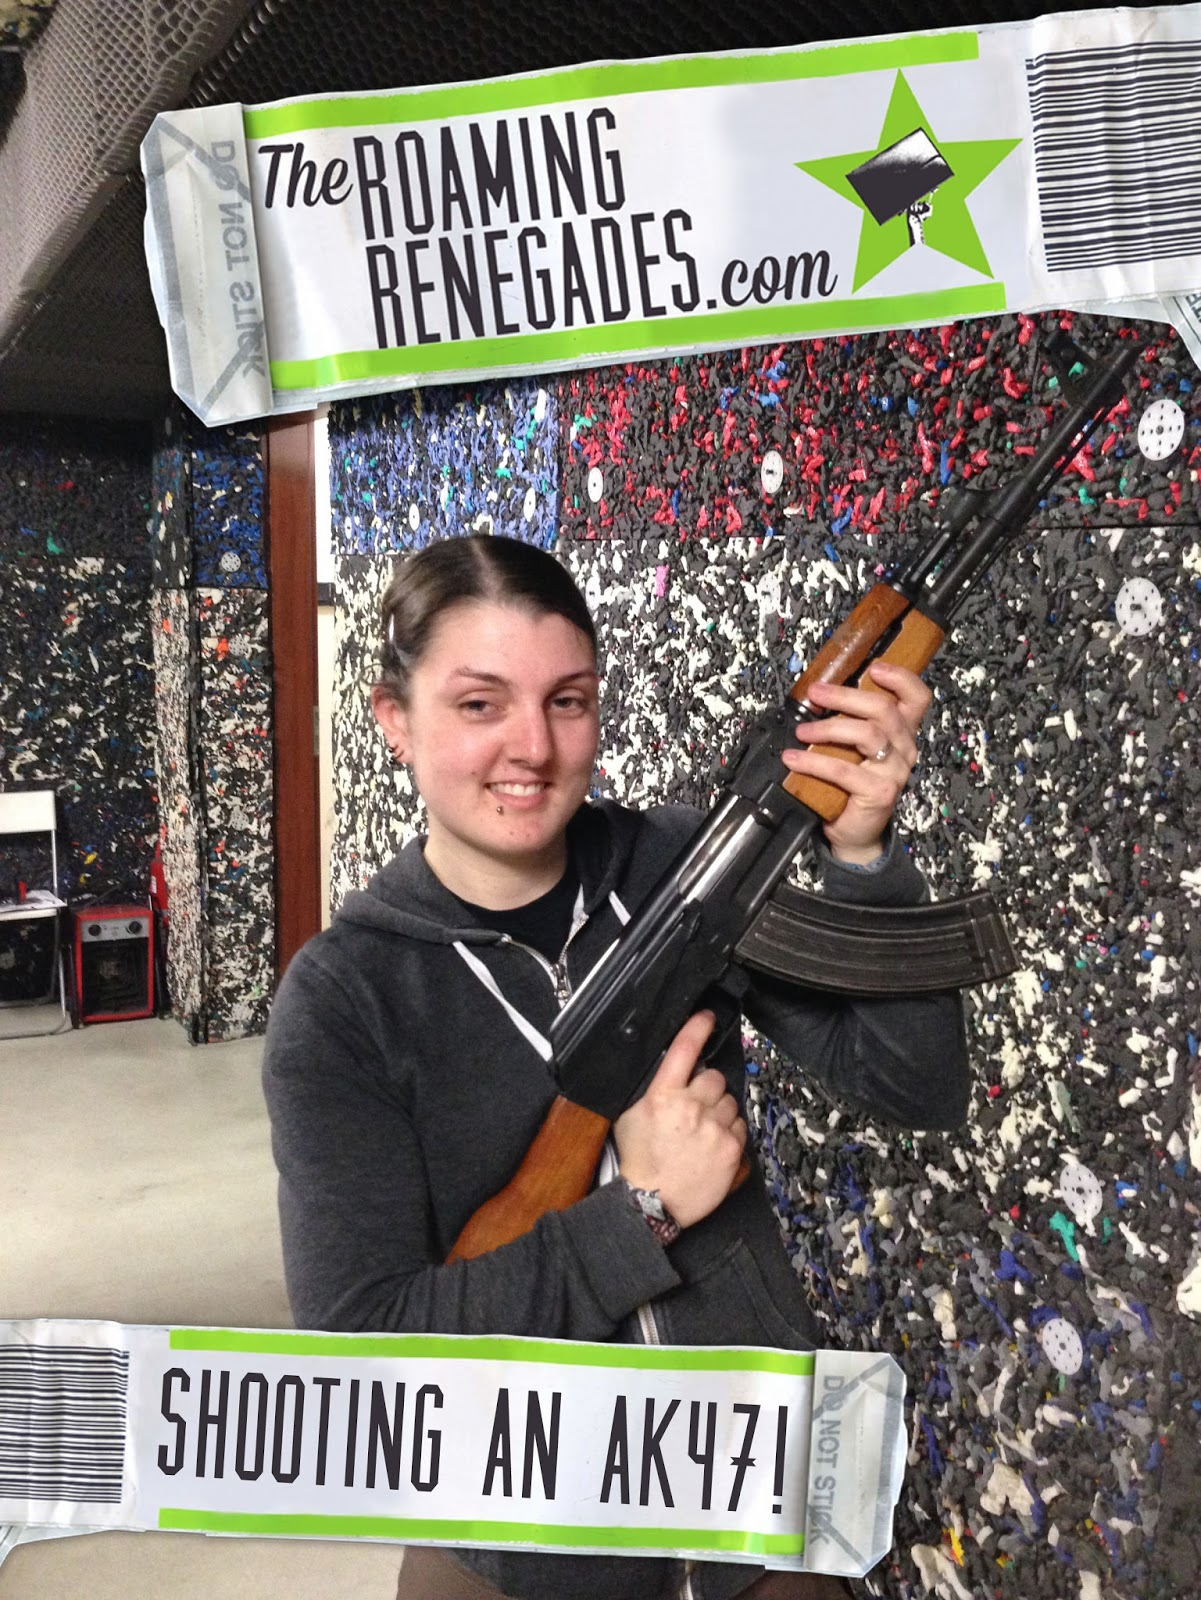 We shot an AK47 in HUNGARY! (Plus other weapons!)